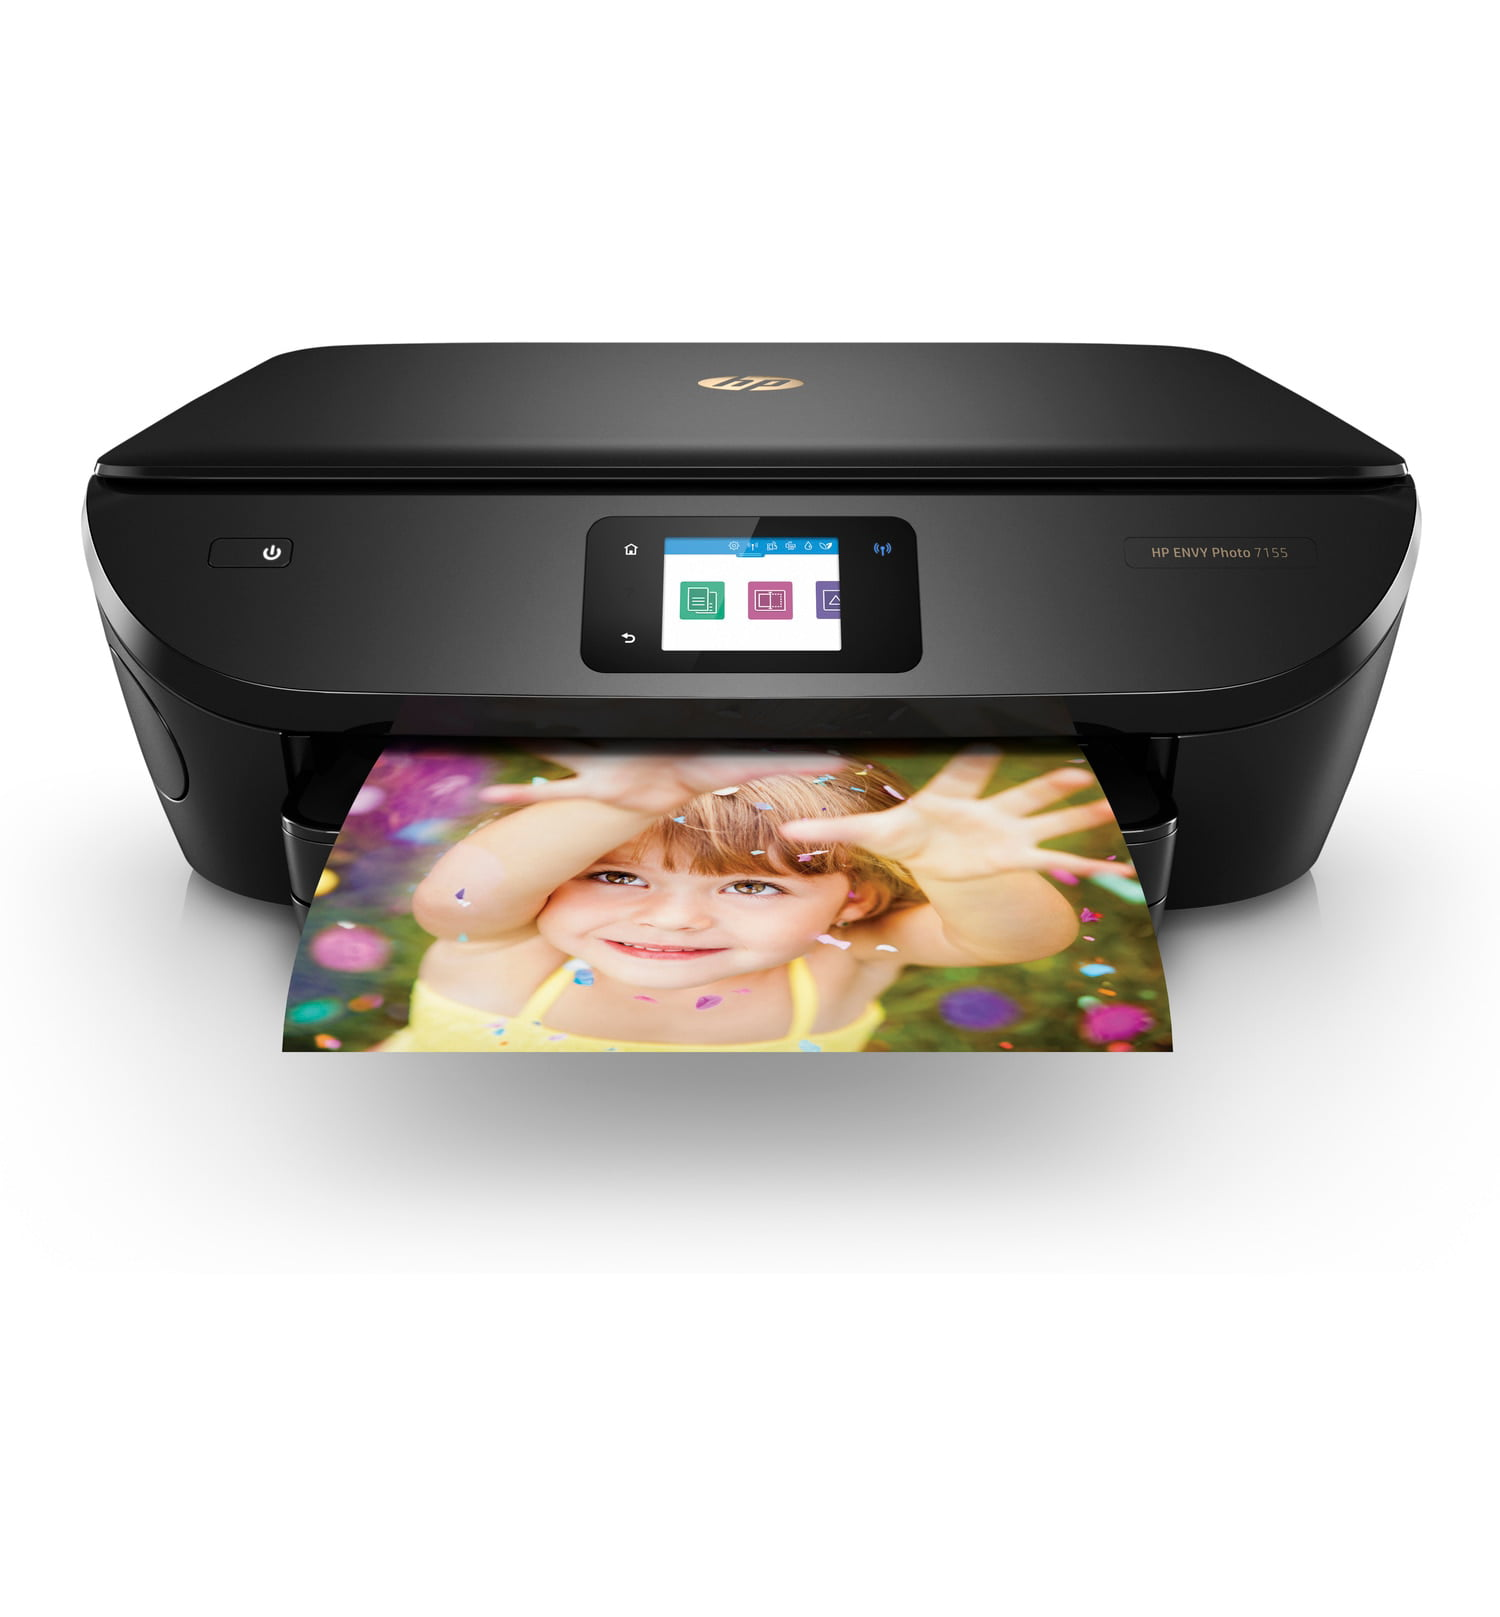 HP ENVY Photo 7155 All-in-One Printer with Wifi and Mobile ...